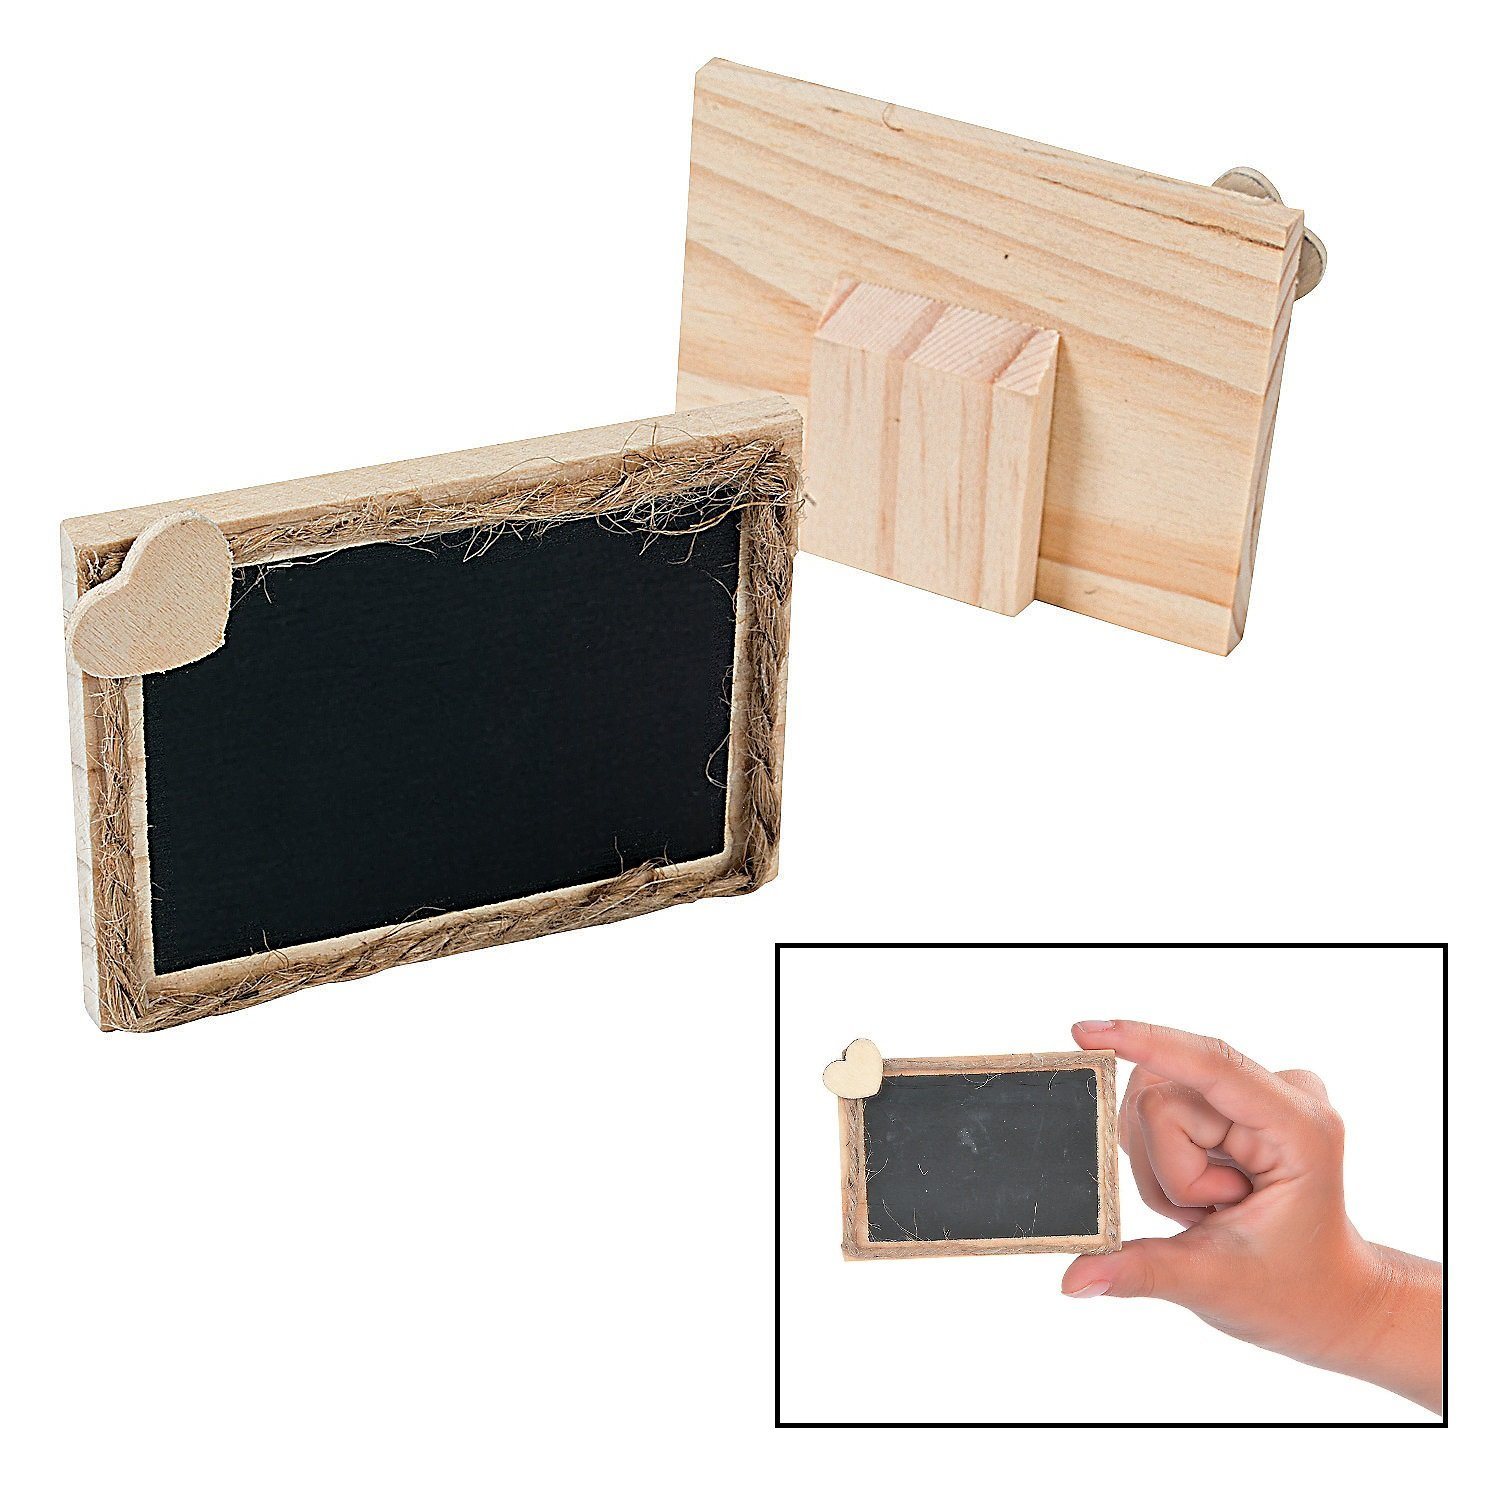 DIY Wooden Chalkboard Place Cards (12 Pack) 3'' x 2 1/4''